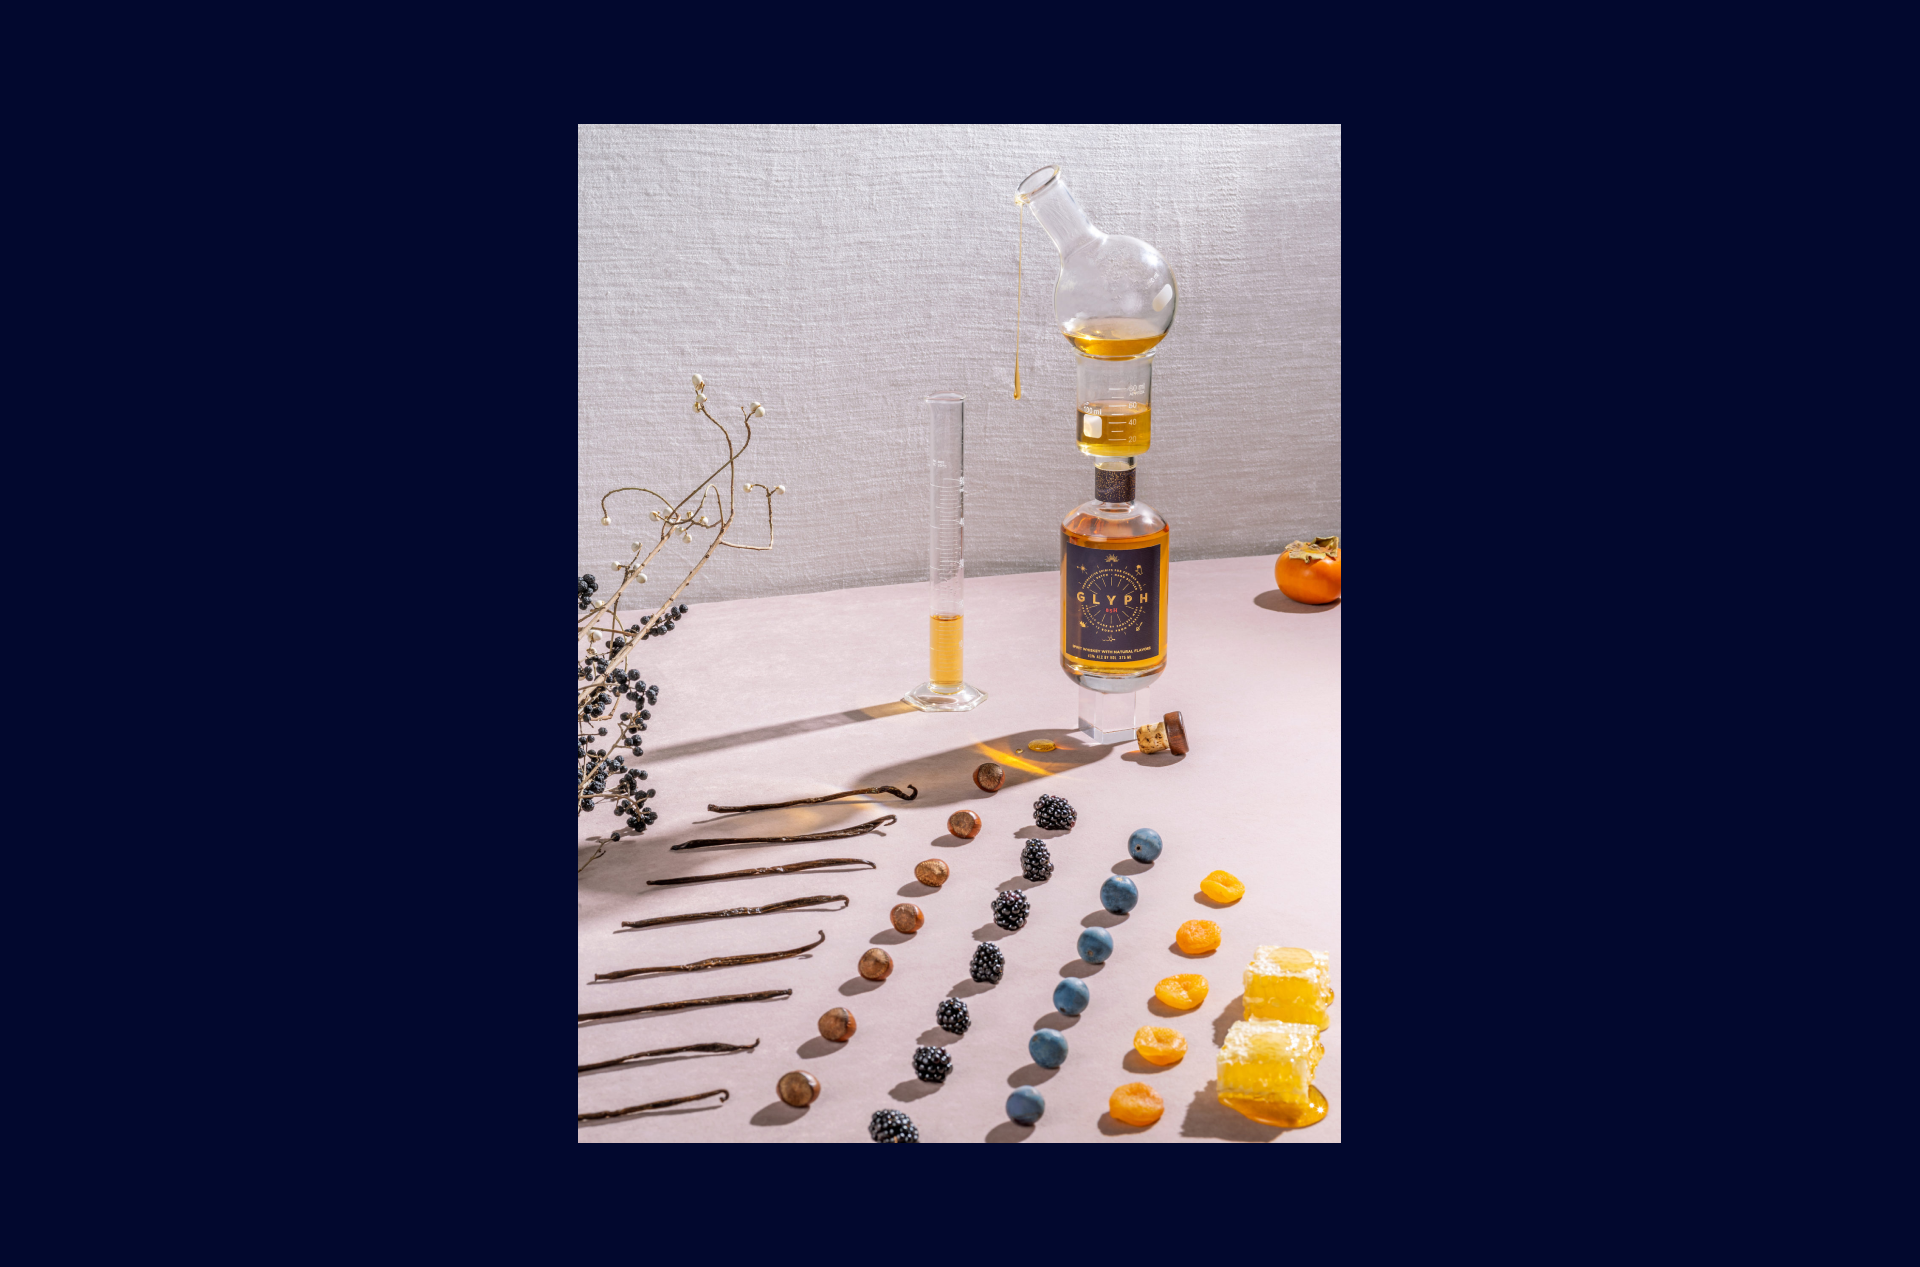 Still life photo of the Glyph bottle, fruits and test tubes